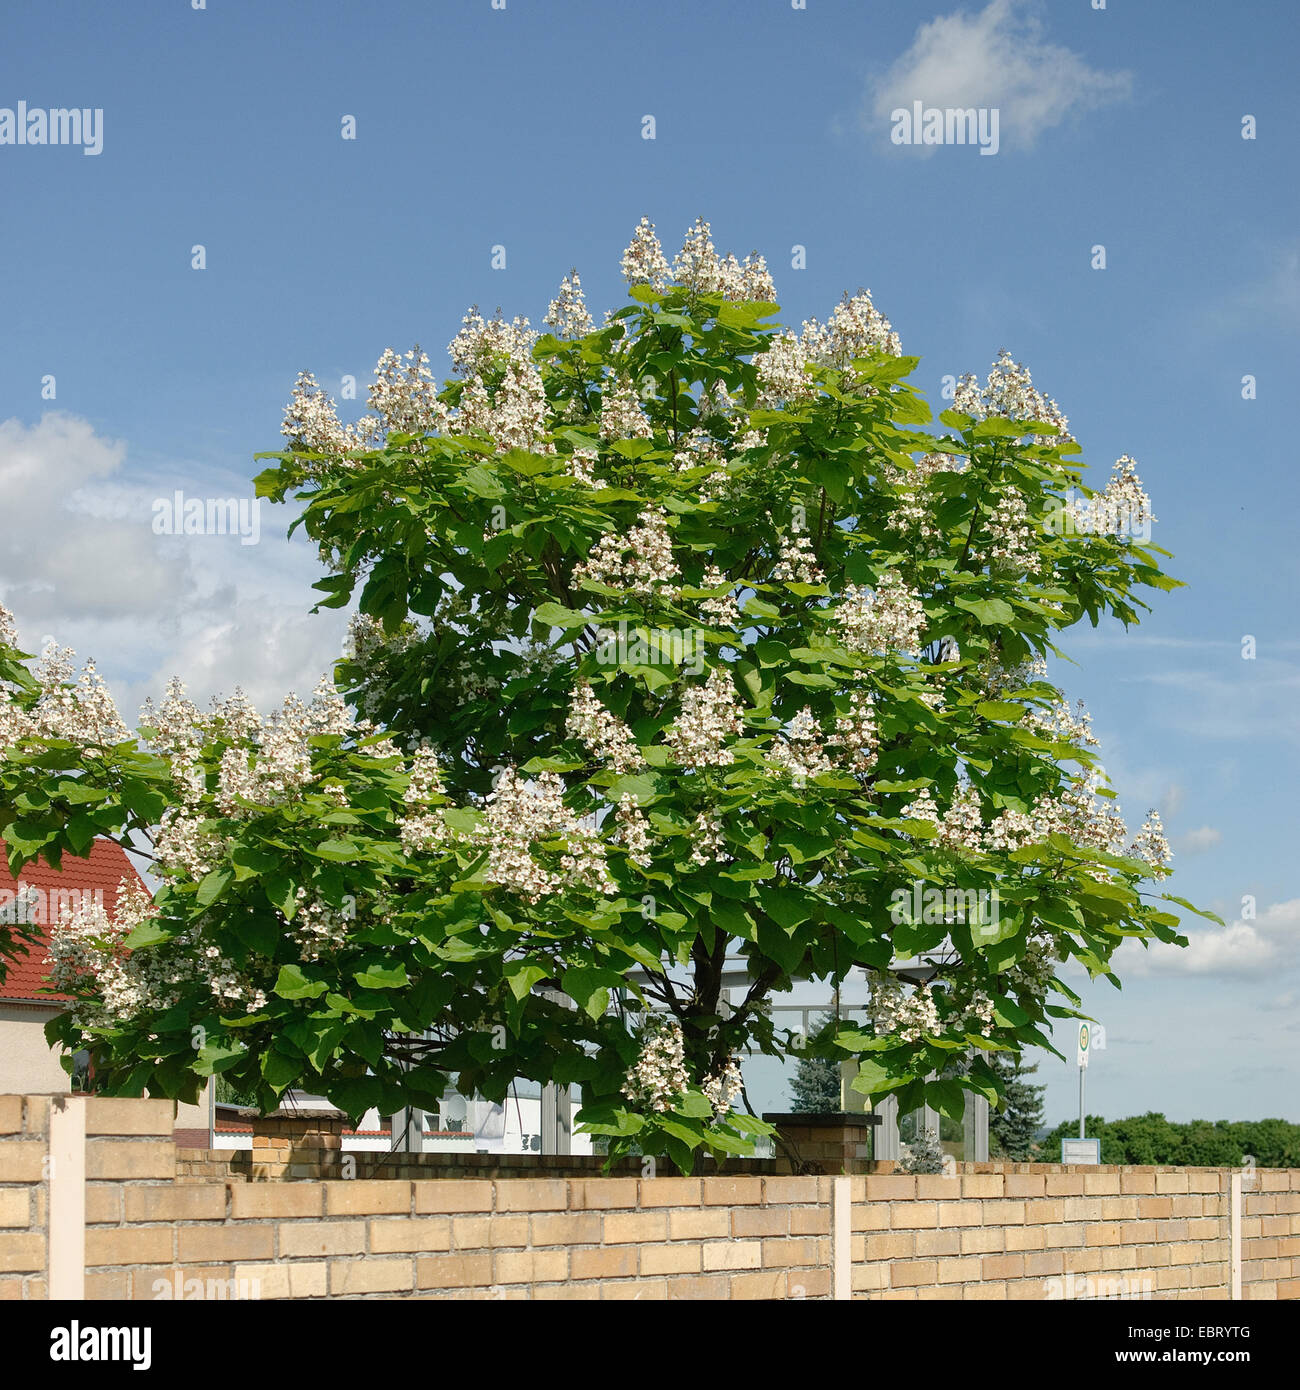 indian bean tree catalpa bignonioides blooming tree. Black Bedroom Furniture Sets. Home Design Ideas